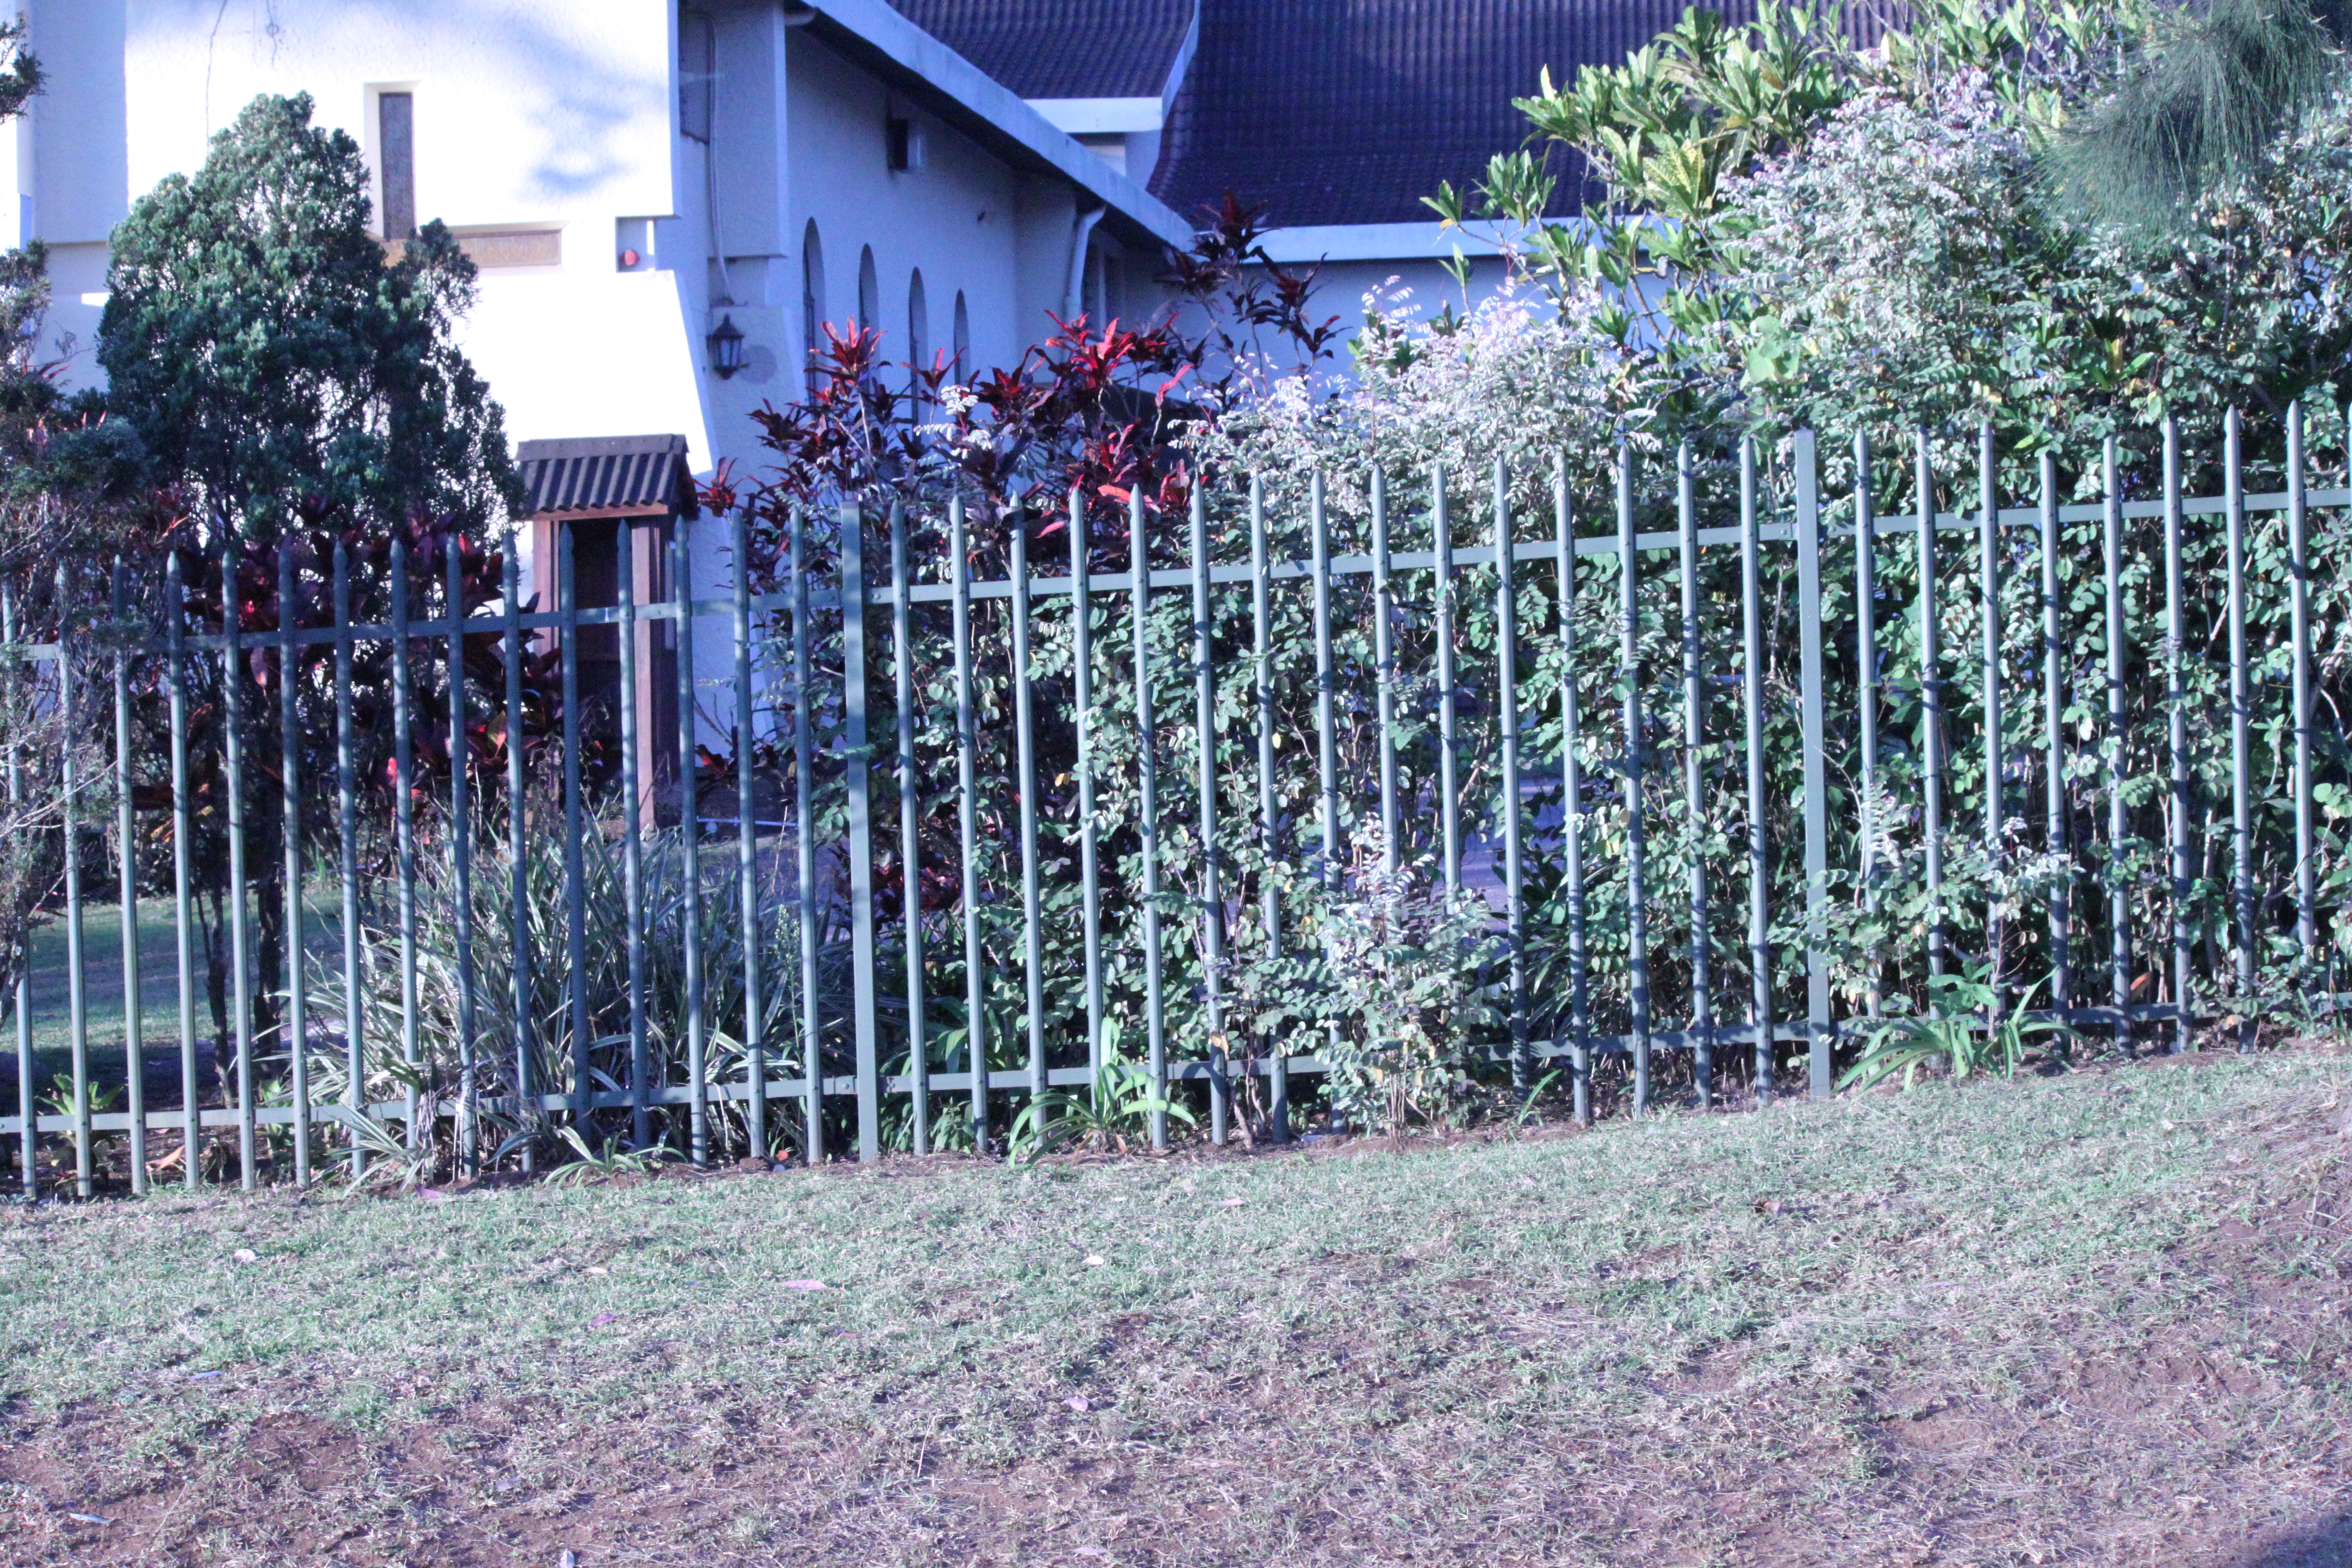 Premium Quality <BR /> Domestic Fencing!